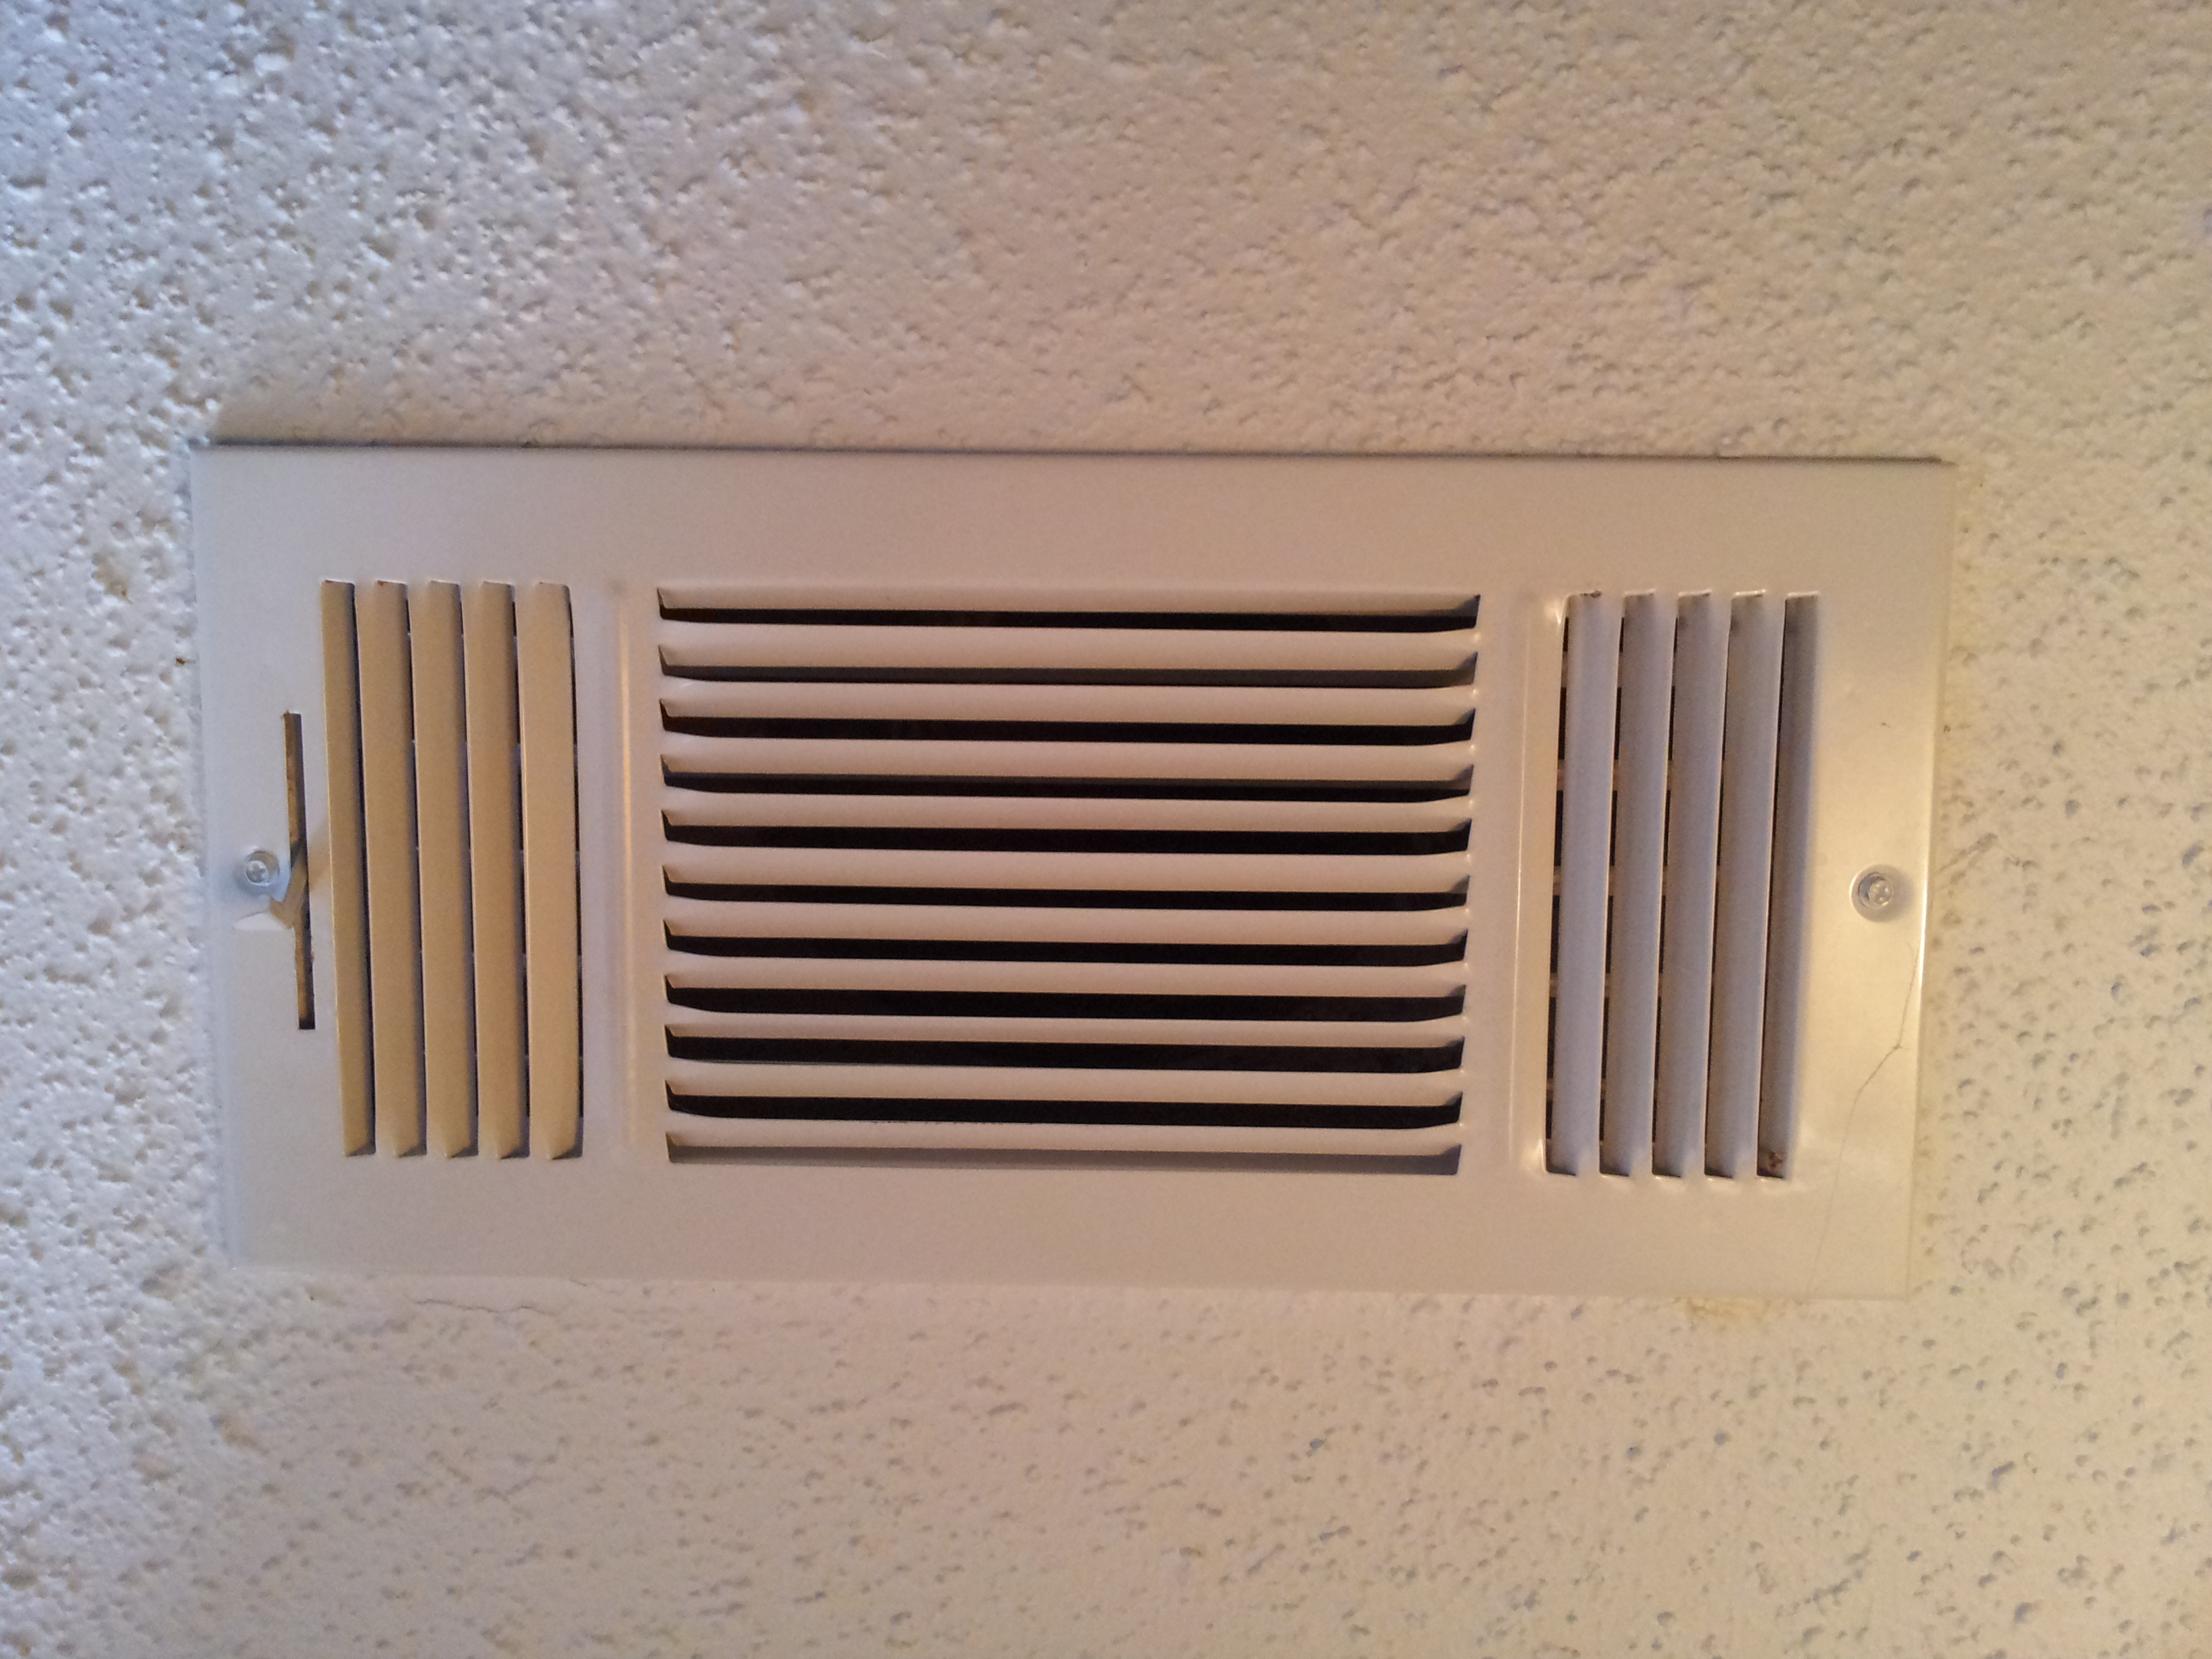 Supply Air Grille Adjustment